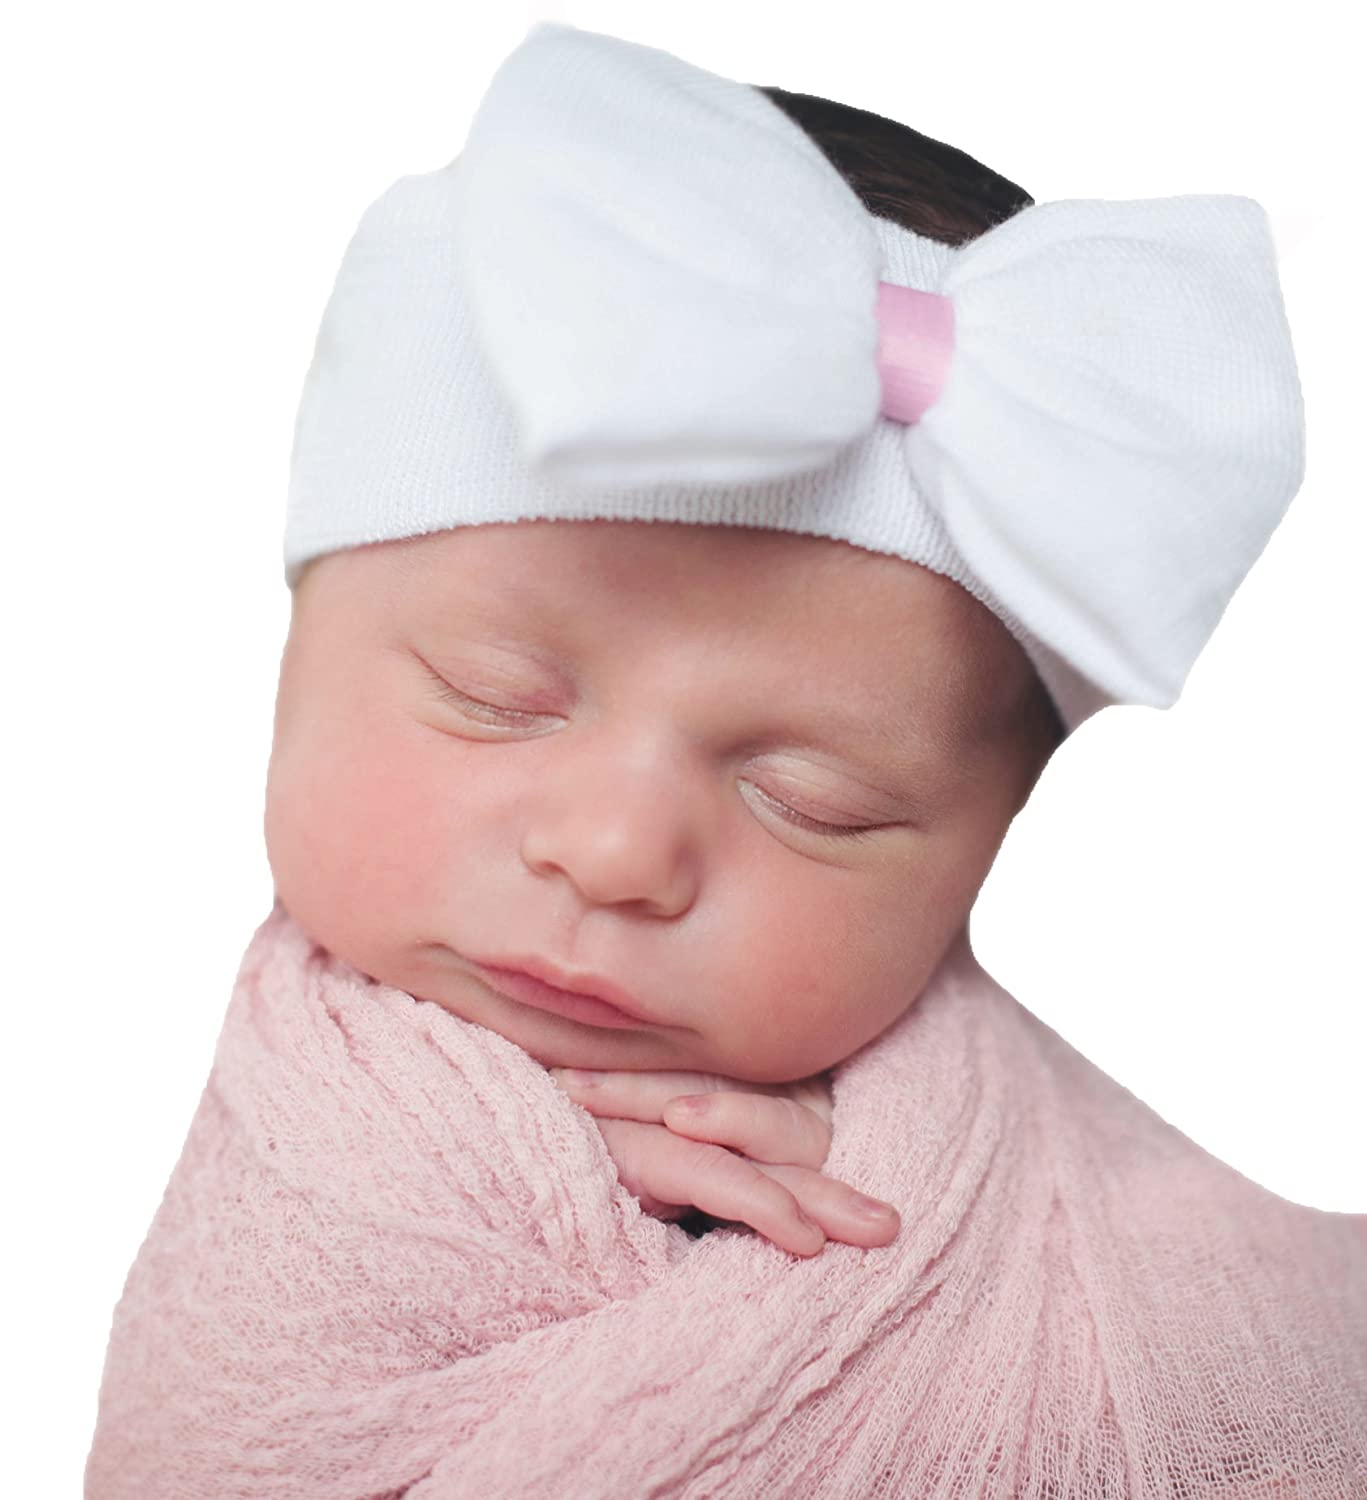 Melondipitys White Nursery Big Bow Headband with Pink Ribbon for Newborn Girl